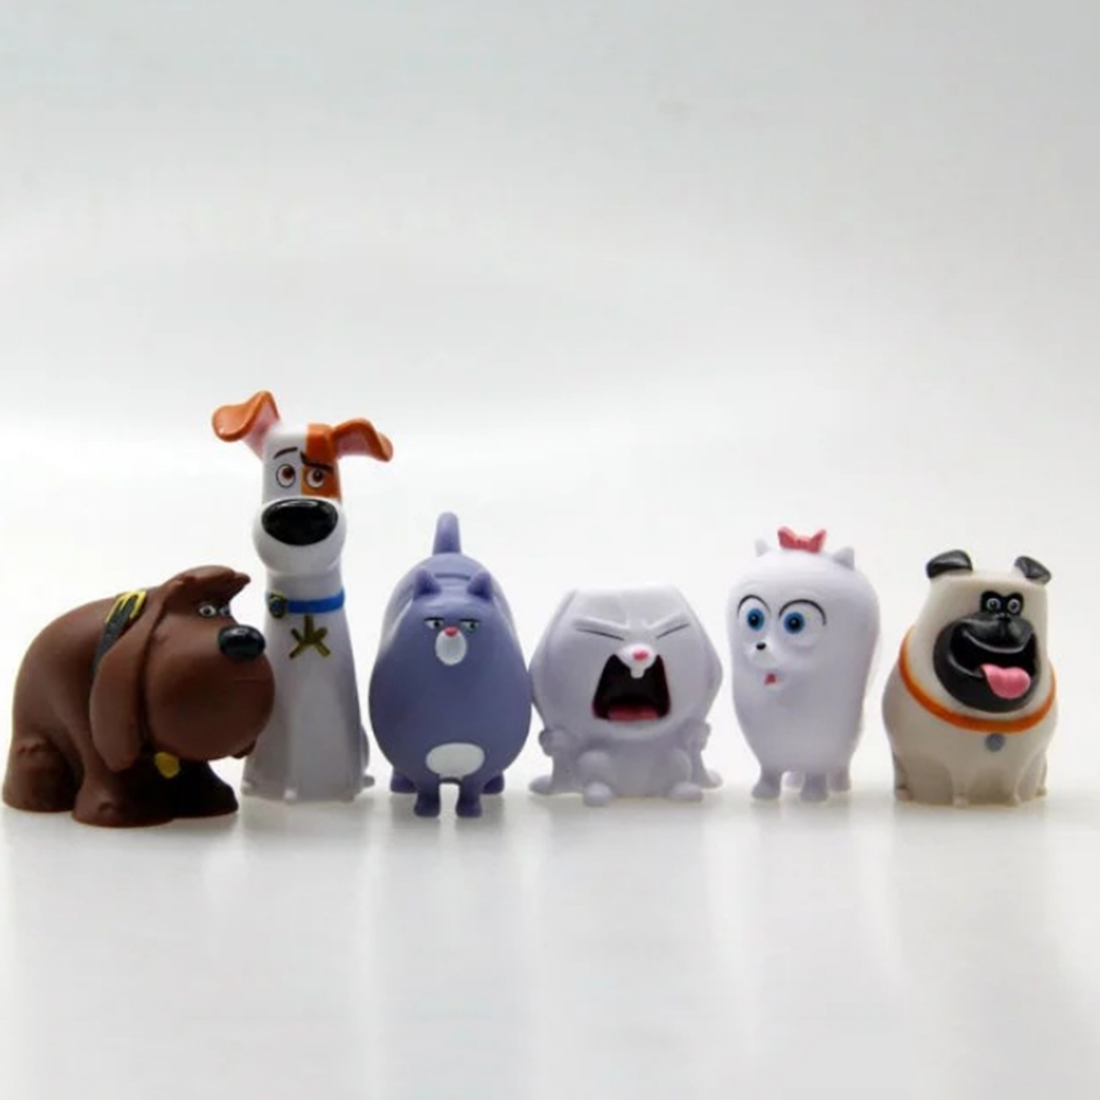 6Pcs The Secret Life of Pets Anime Action Figure Set Model Toy Key Ring Pendent Doll Toy<br><br>Aliexpress